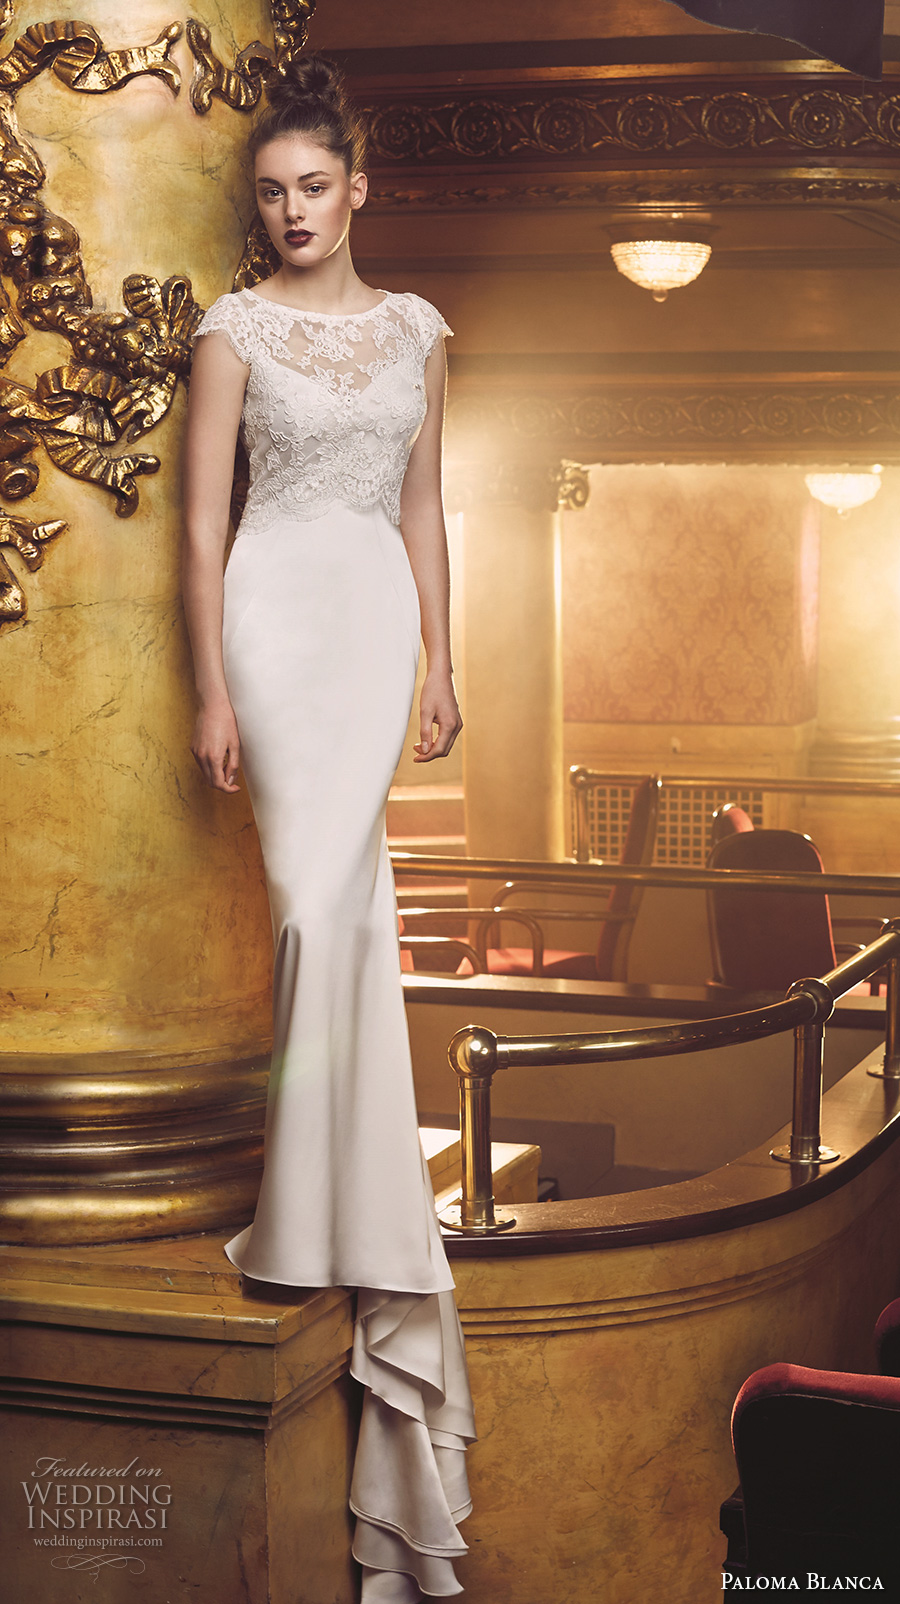 Paloma blanca fall 2016 wedding dresses wedding inspirasi for Wedding dress cleaning des moines